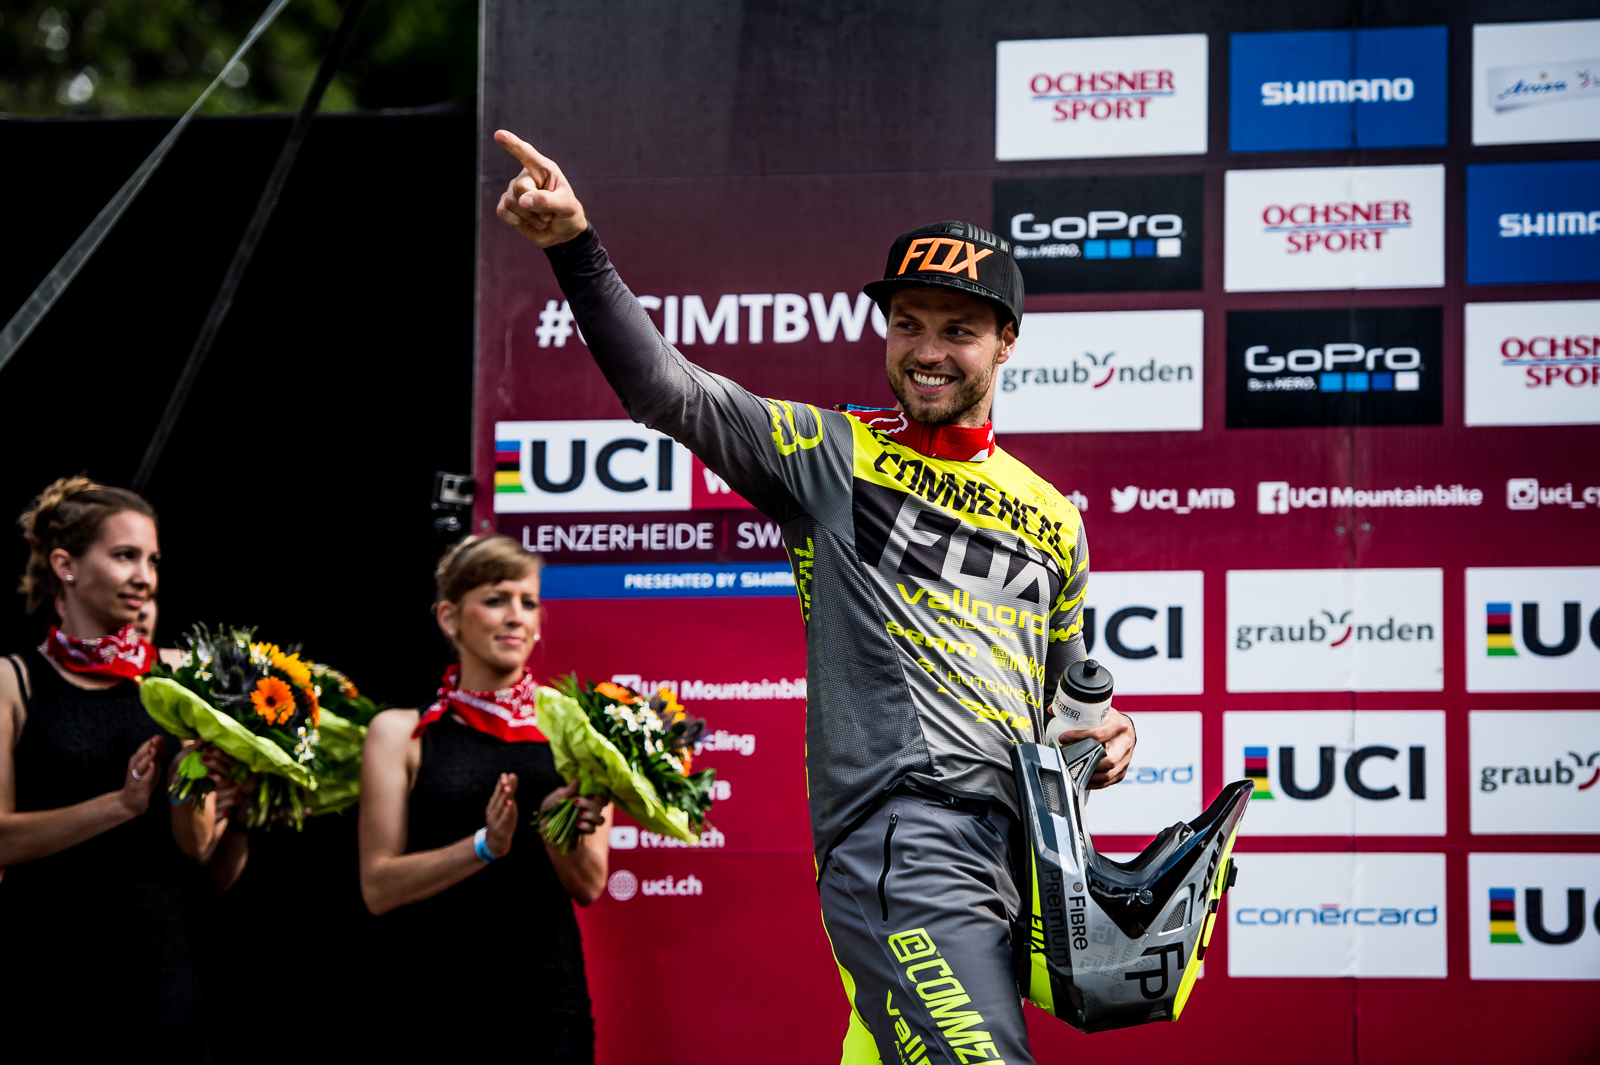 Remi Thirion stoked to send it to fourth place for his third career WC podium.